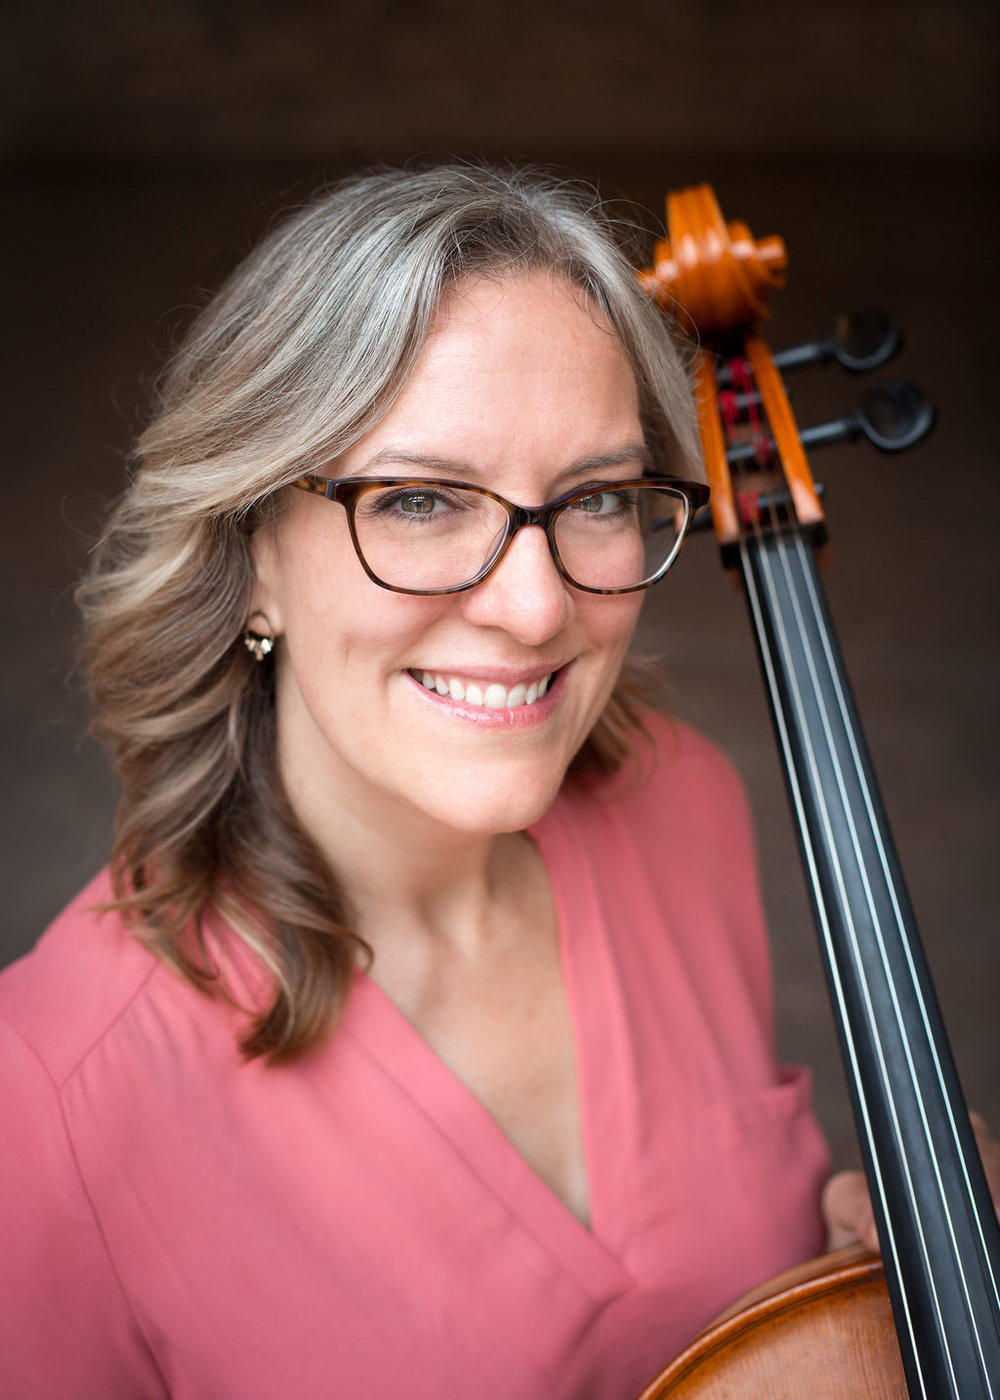 Melissa Bach, Cellist Client Liaison, Founding Member  DePaul University School of Music  If you work with Quartet Parapluie, you'll likely collaborate with Melissa on some level. As a founding member and client liaison, she plays a role in just about every aspect of Quartet Parapluie, whether performing on stage, or taking care of business details. Her clients are pretty much crazy about her – just read about it on  Yelp  or  The Knot . Plus, she's a highly sought-after cellist. You can catch Melissa performing live around Chicago on a regular basis, with New Philharmonic, Illinois Philharmonic Orchestra, Chicago Jazz Philharmonic, or Northwest Indiana Symphony. She's performed live with artists such as Idina Menzel, Peter Gabriel, Michael Bublé, Barry Manilow and Kanye West. Plus, she's appeared on the Late Show with David Letterman, as well as the Oprah Show. In the world of Indie-Rock, she has performed with Bright Eyes, Kishi Bashi, Pinetop Seven, Rilo Kiley and a host of other Chicago bands, including Sleeping At Last, which featured her in a  music video .  Melissa's teachers have included Christopher Costanza and Robert Jamieson.